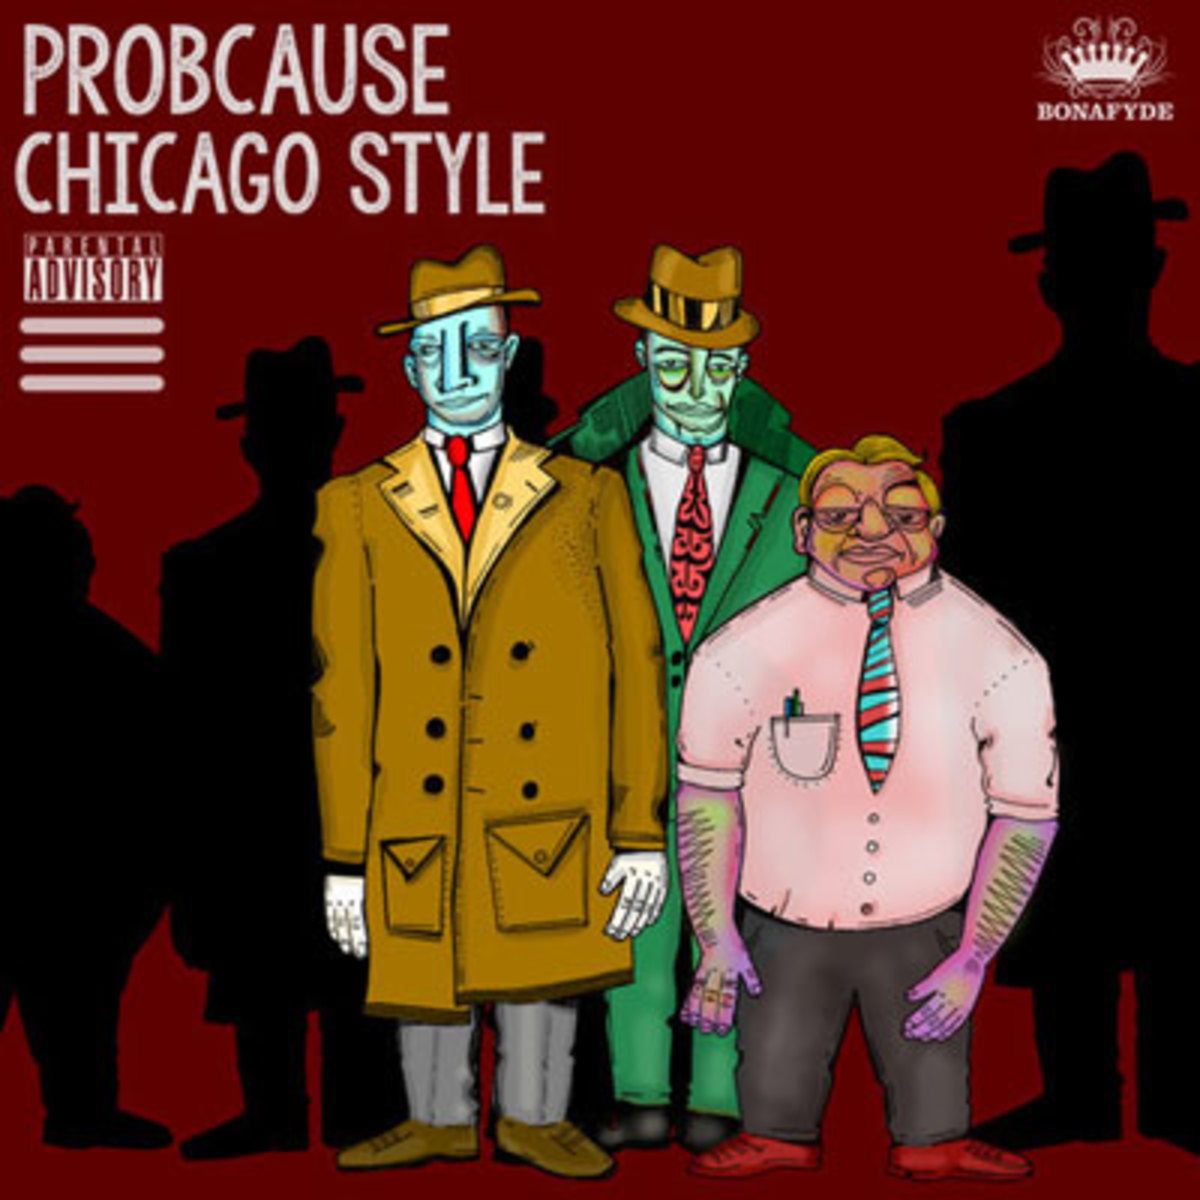 probcause-chicagostyle.jpg